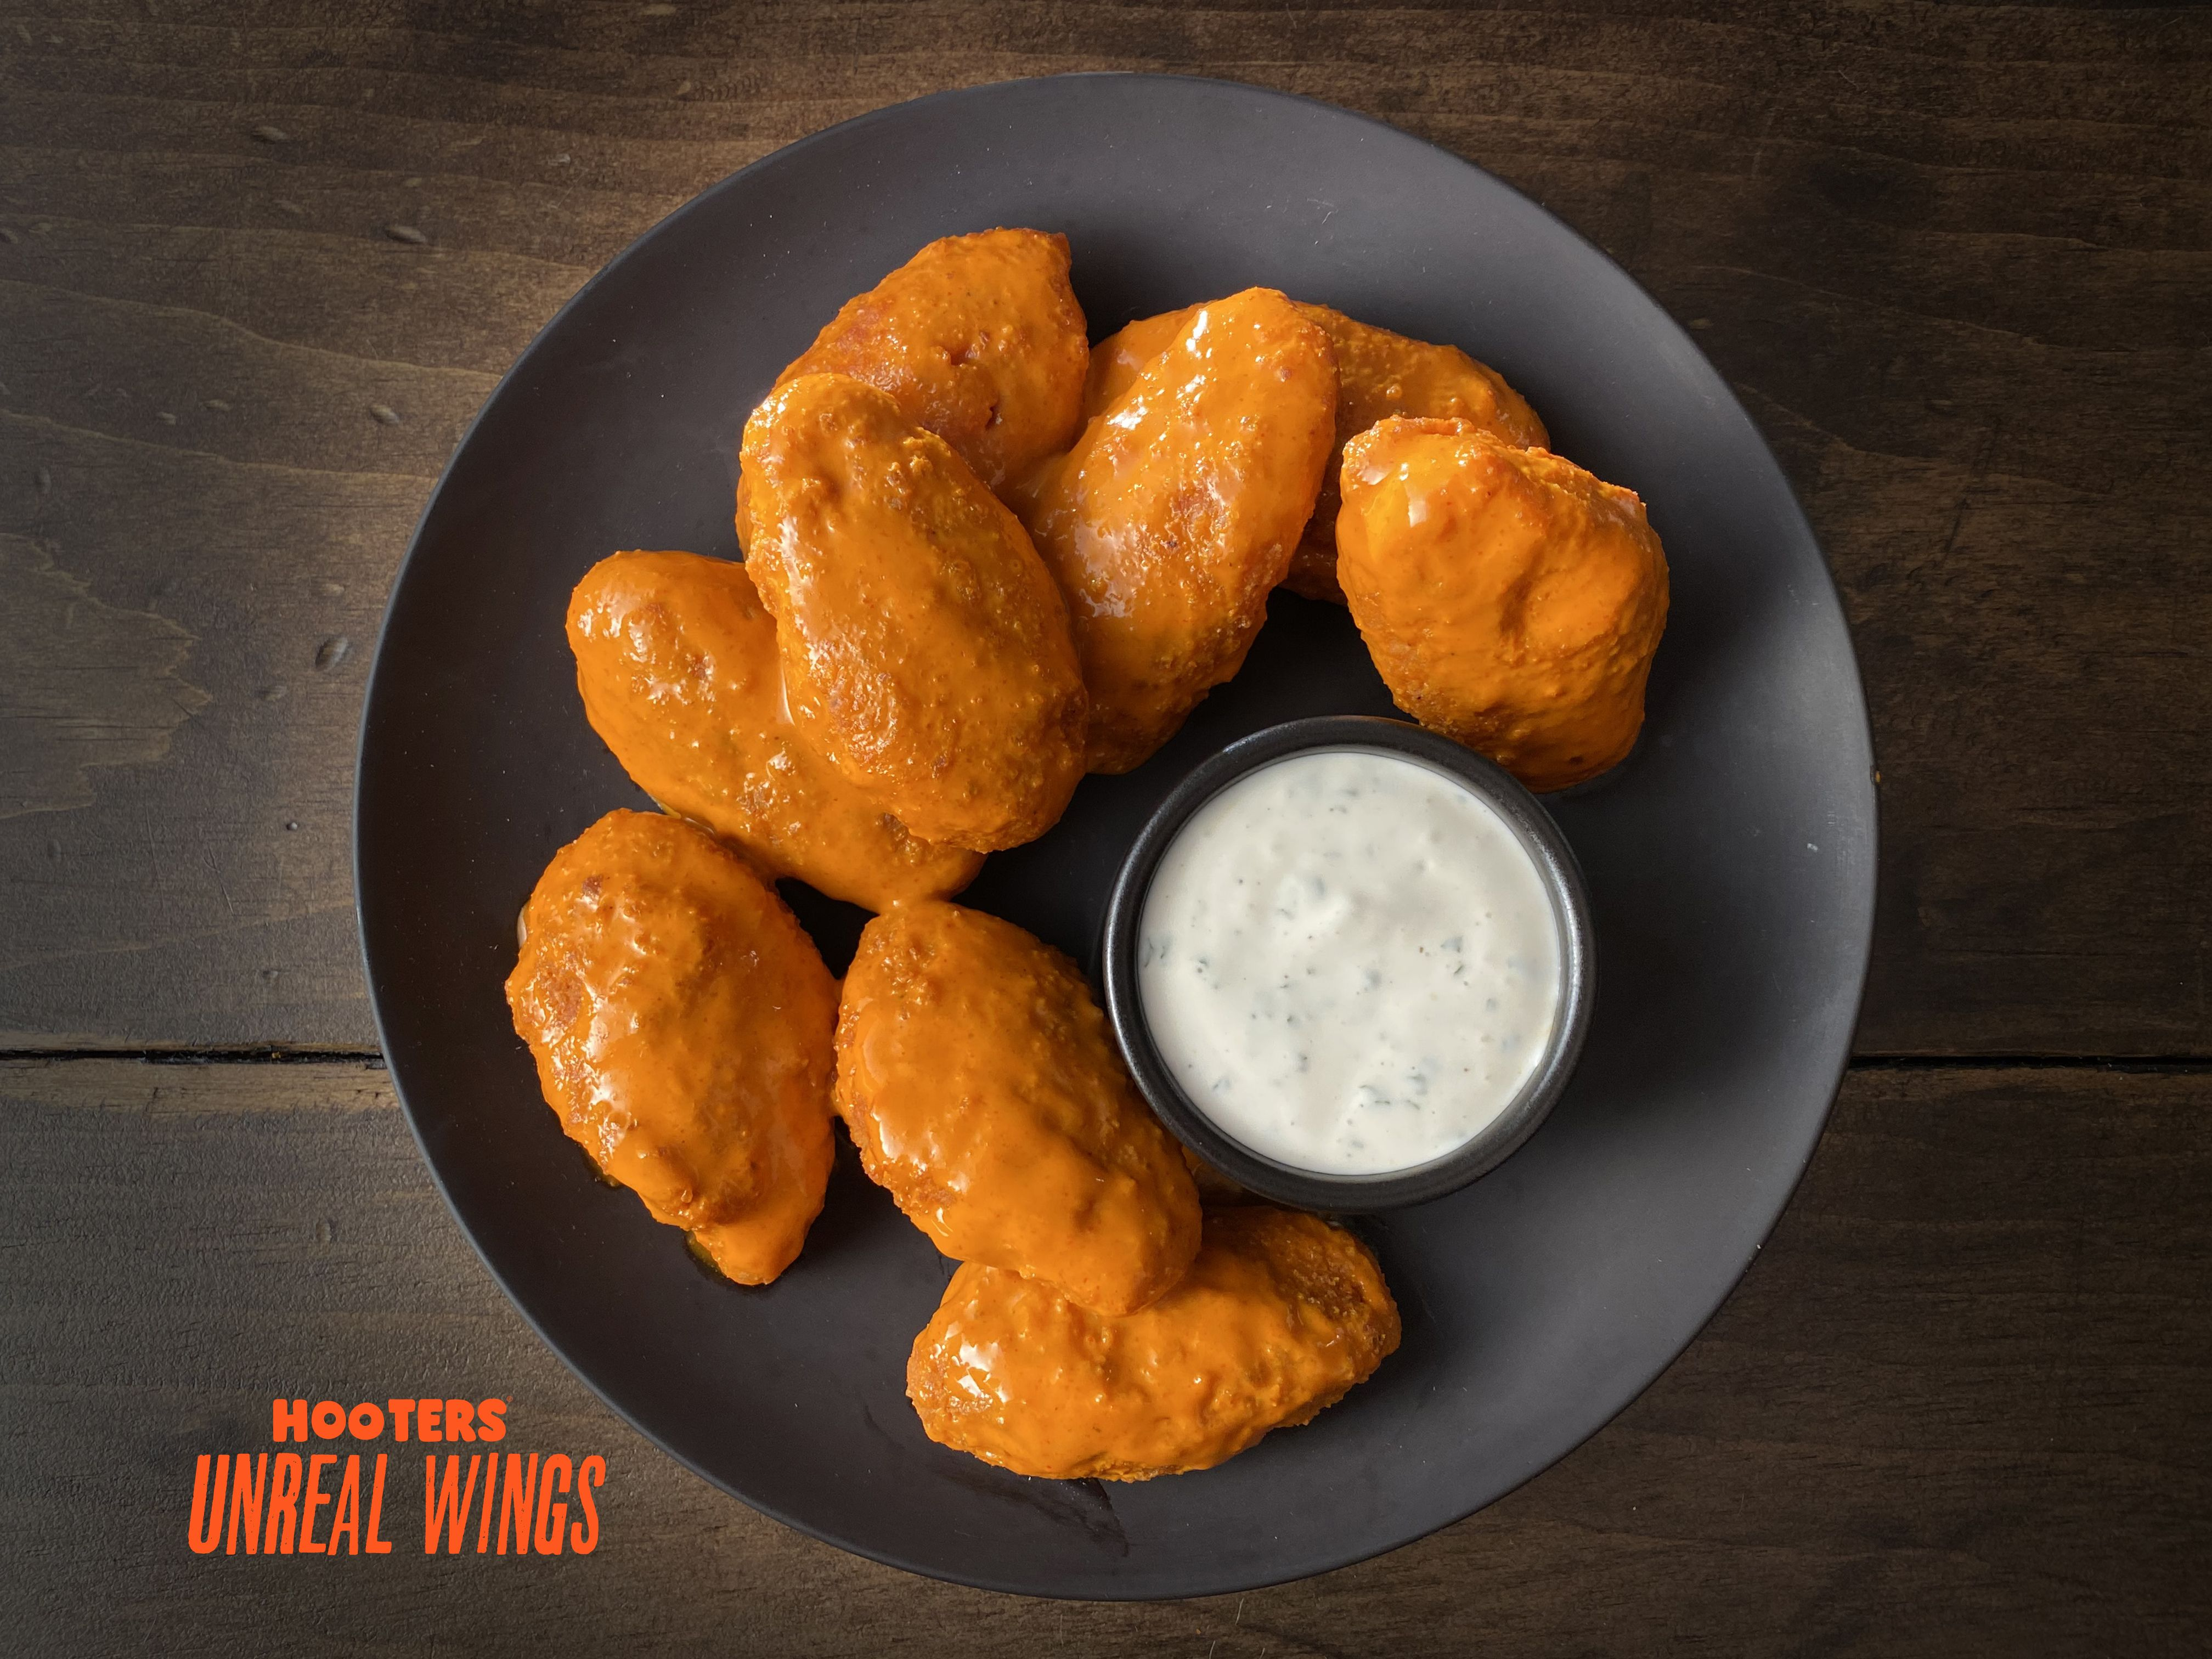 Hooters Just Launched Meatless Chicken Wings From Quorn, But Are They Actually Healthy?